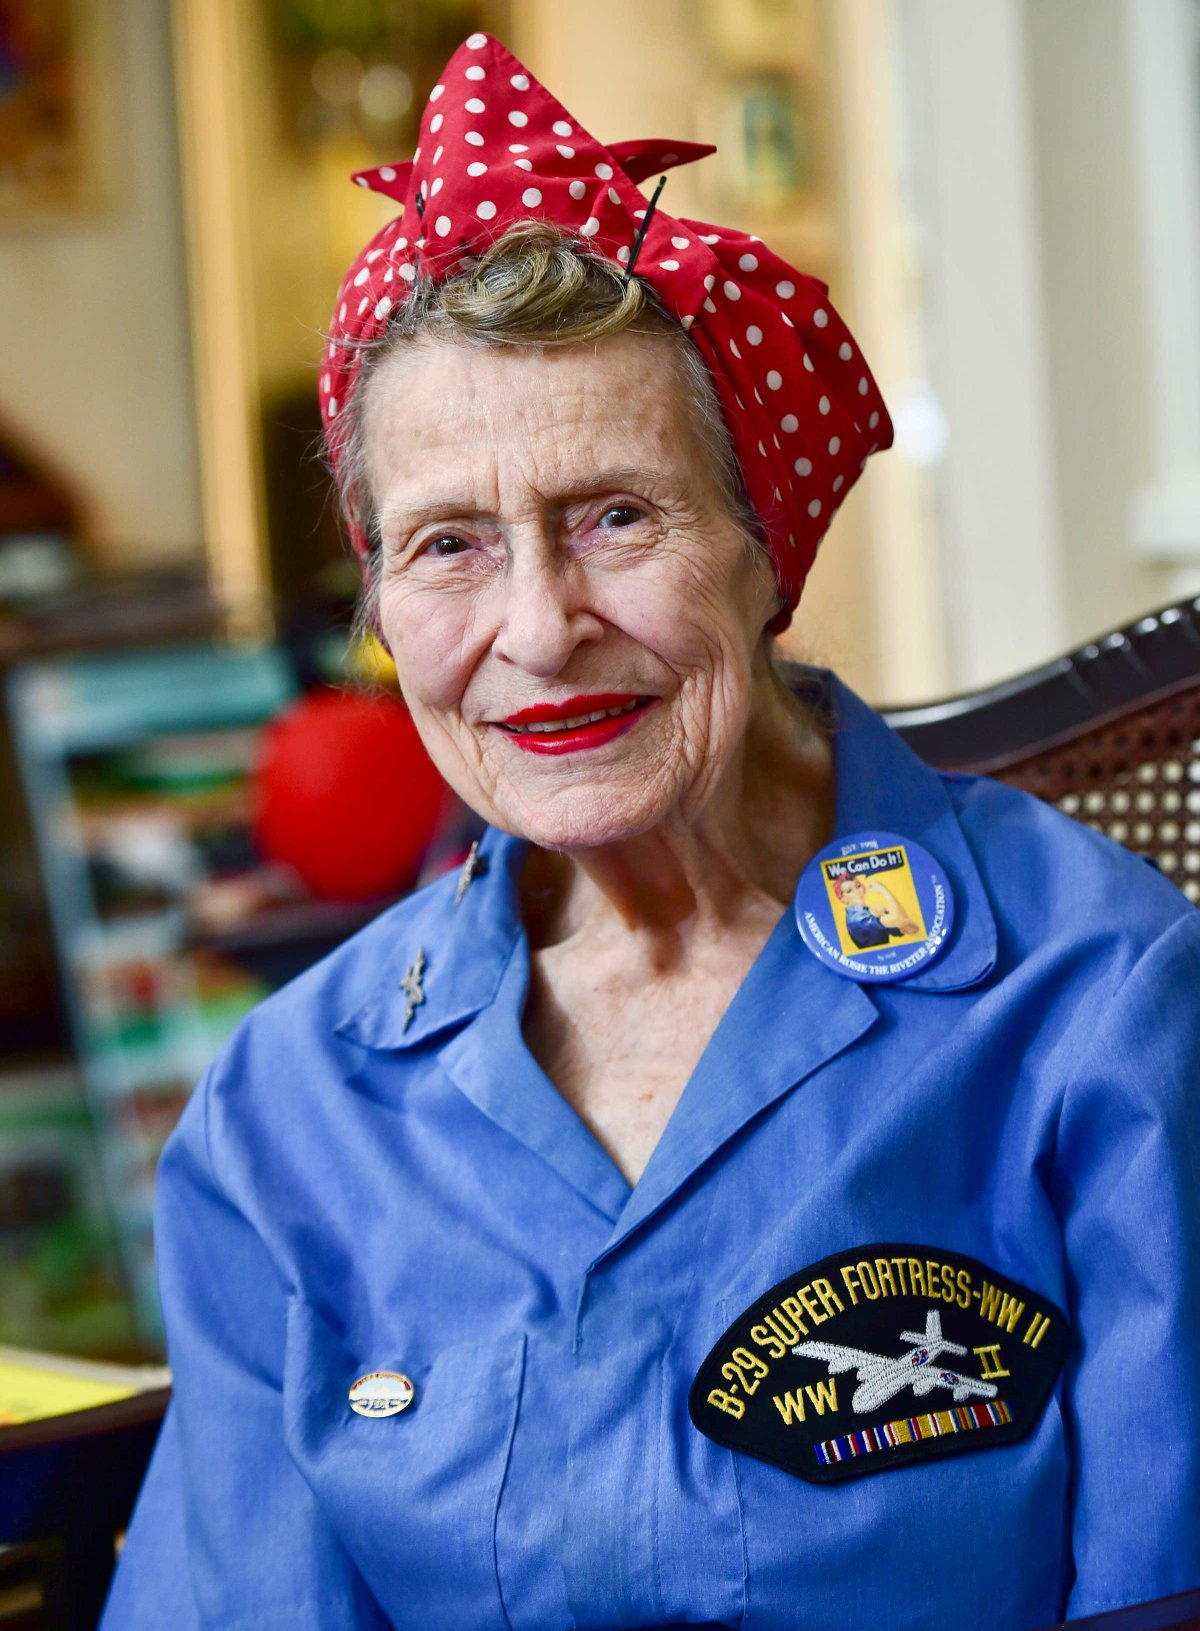 We can (still) do it!: Frances Carter continues to serve by sharing legacies of Rosie the Riveter trailblazers - thehomewoodstar.com